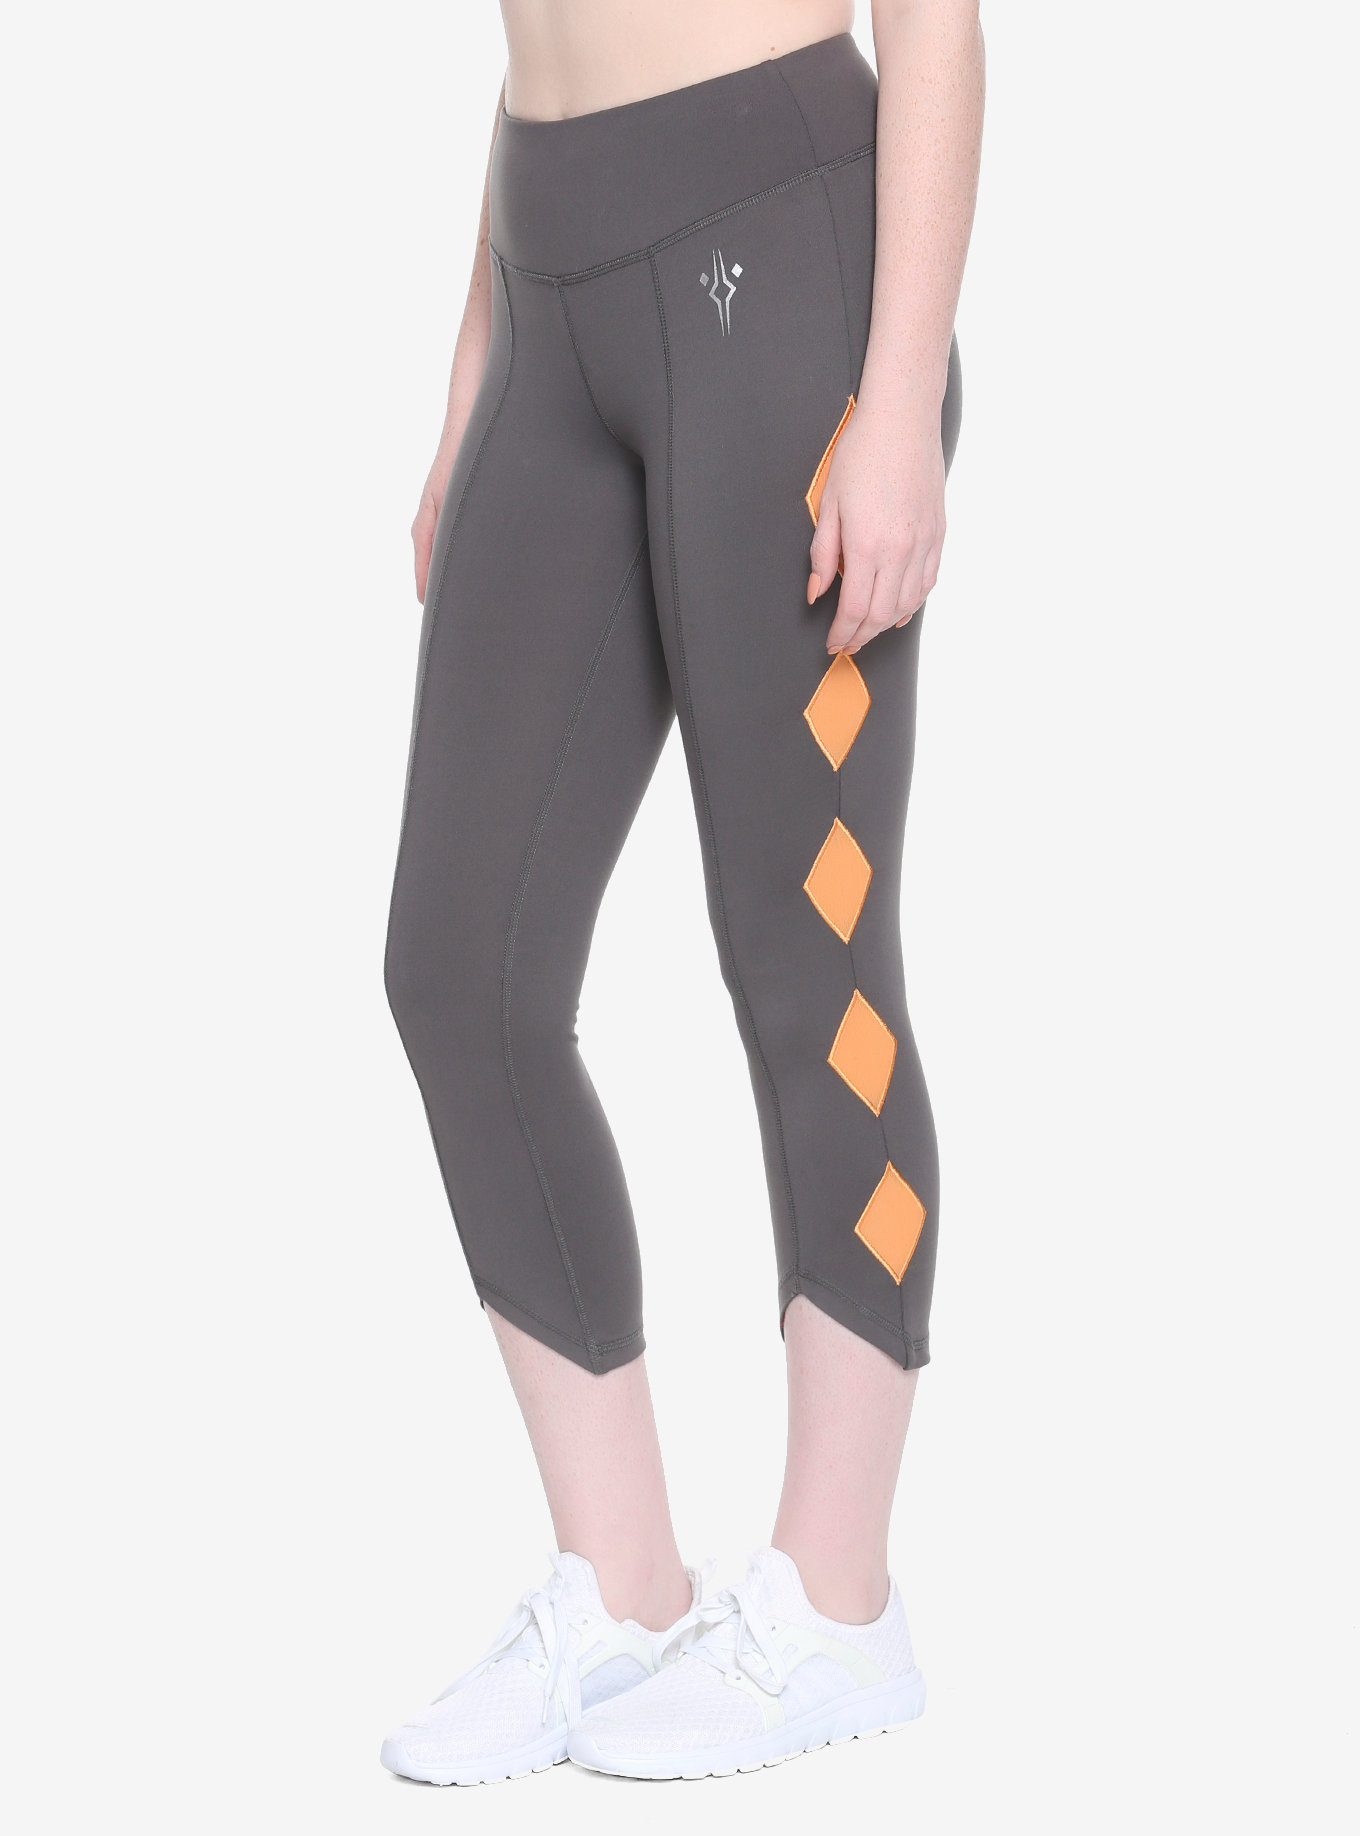 Women's Her Universe x Star Wars Ahsoka Tano Active Collection at Hot Topic